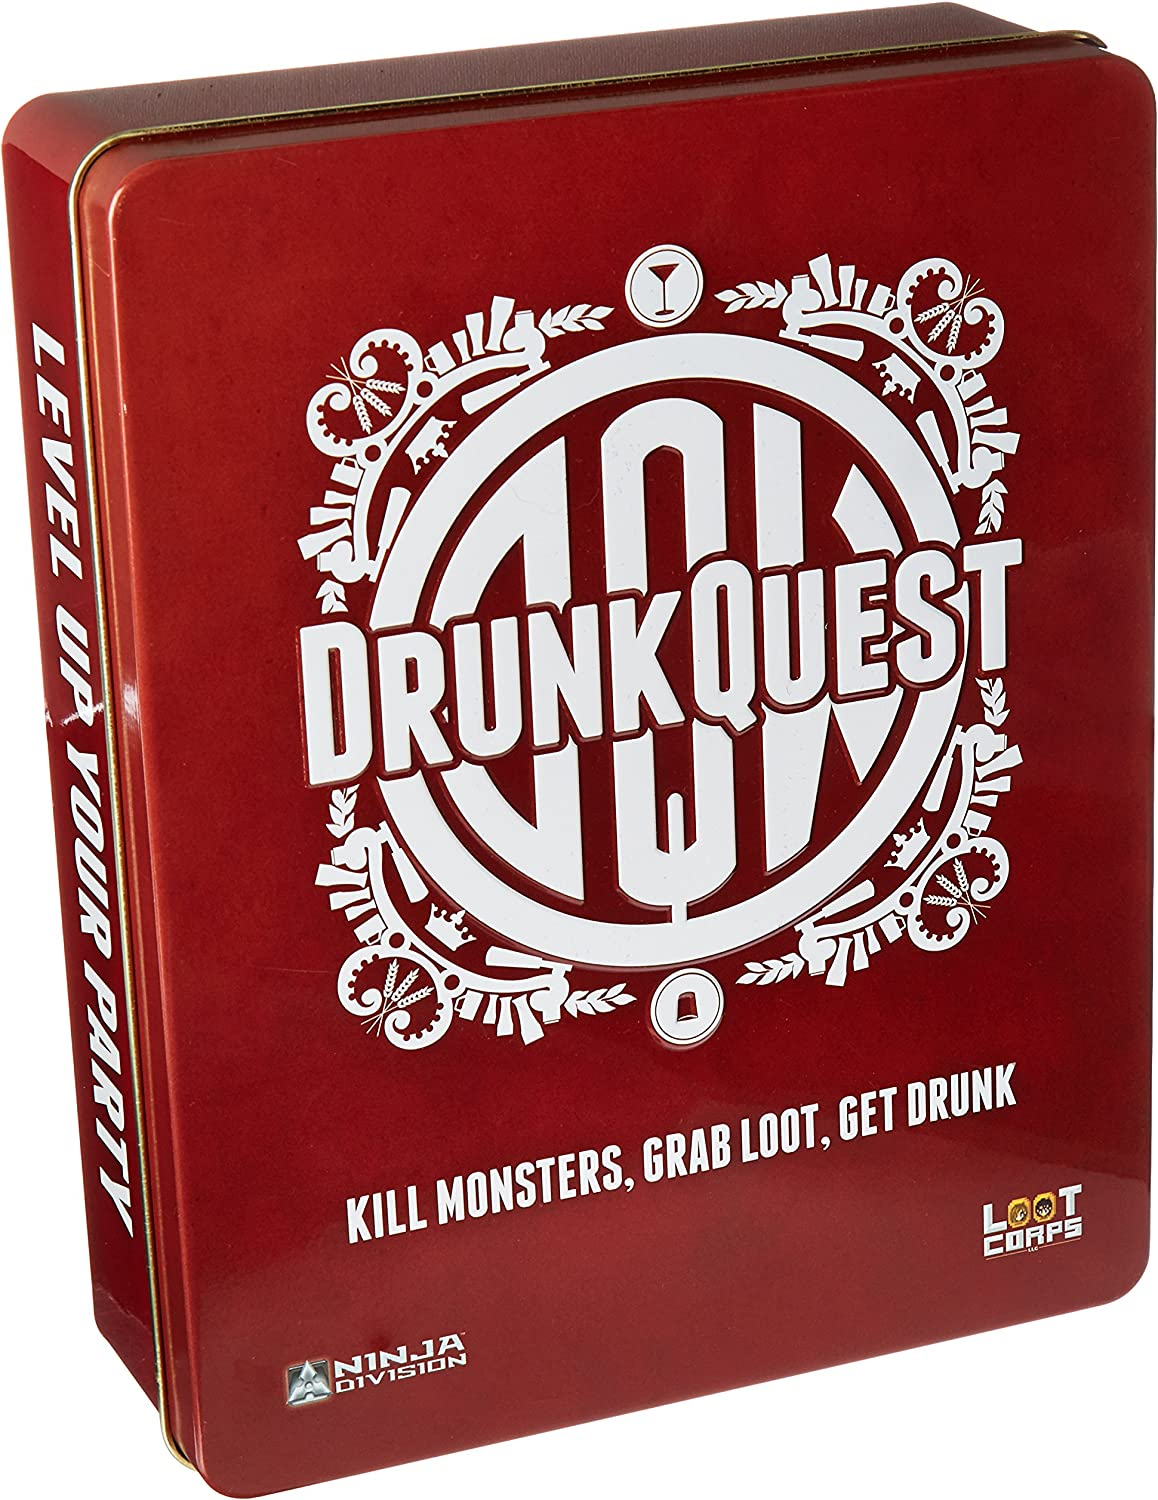 Ninja Division Drunk Quest Tin Packaging Board Game (6 Player)